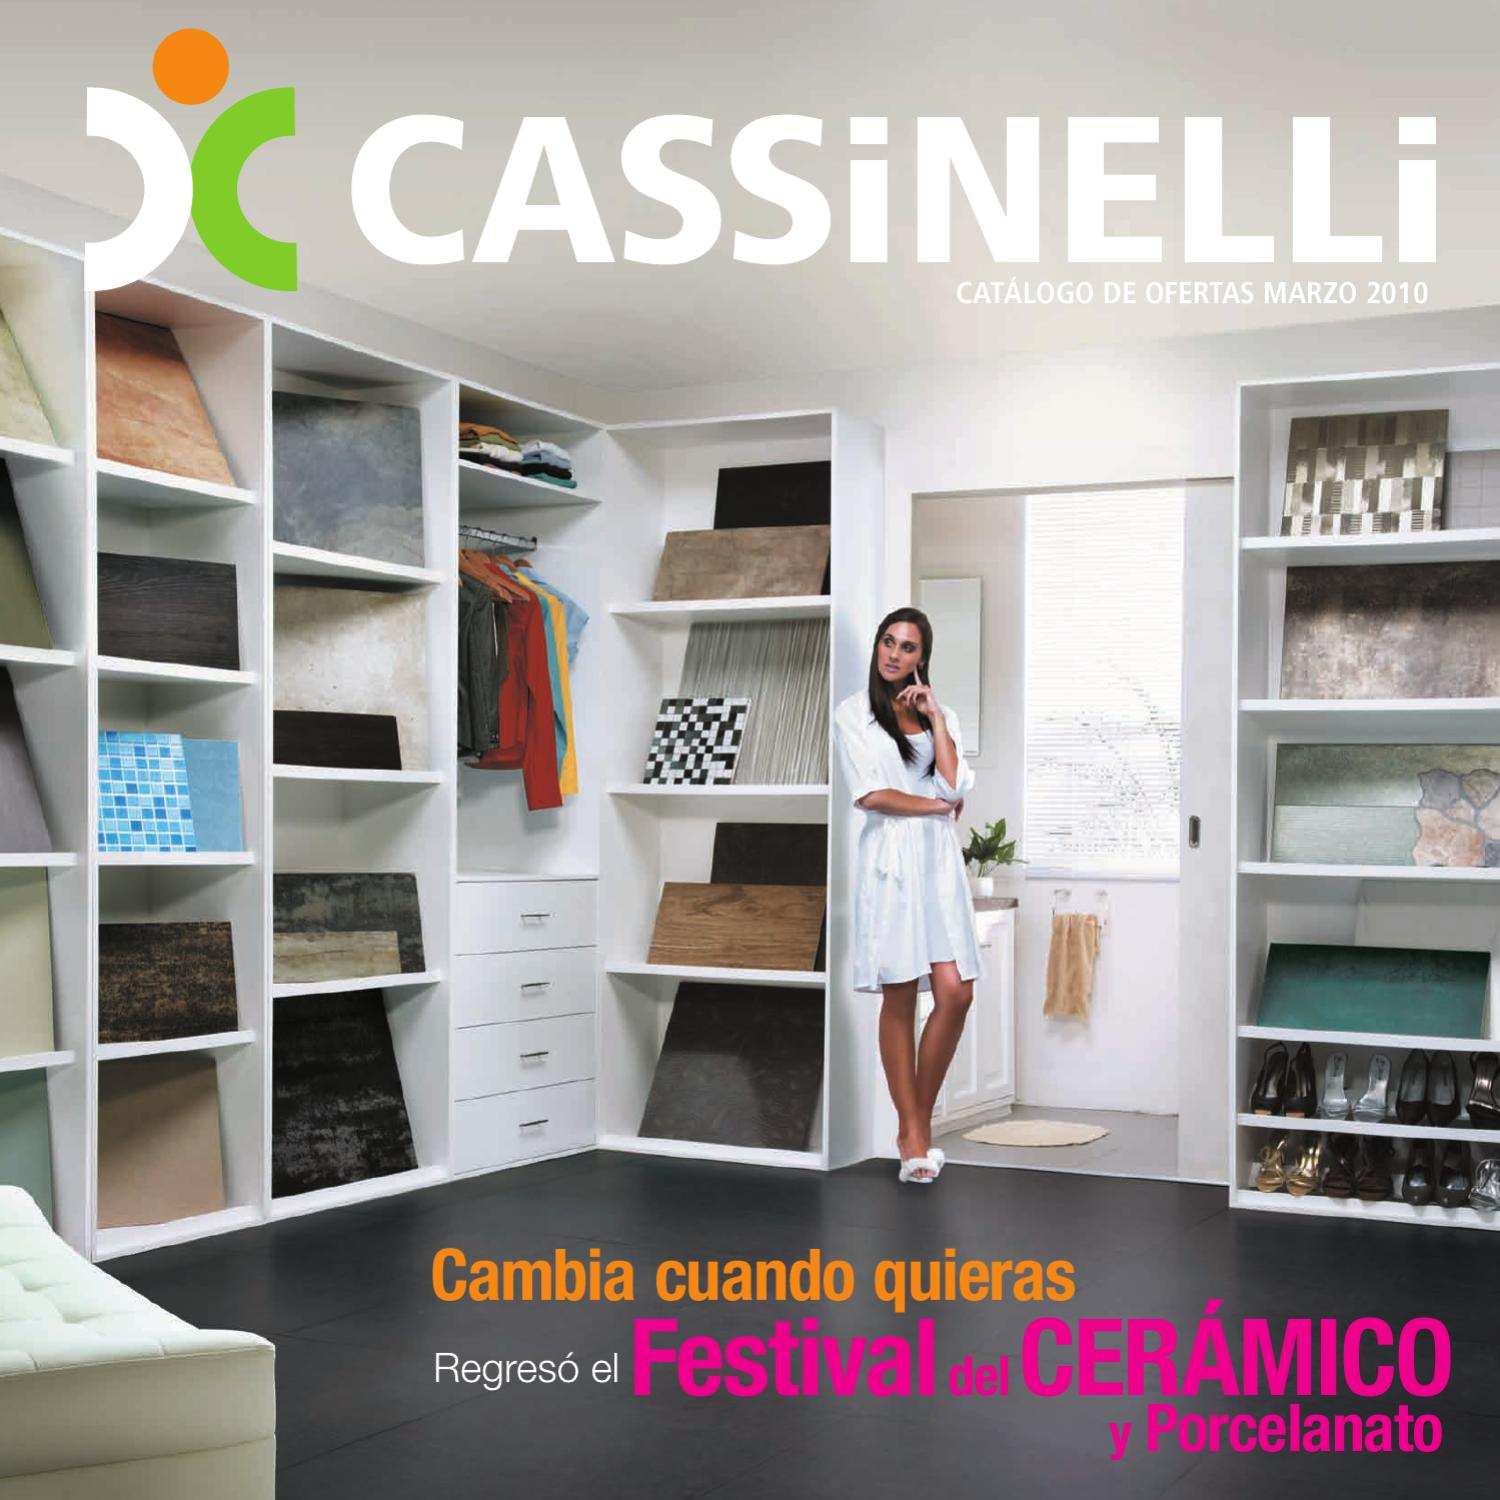 Cassinelli ofertas marzo 2012 by cassinelli   issuu